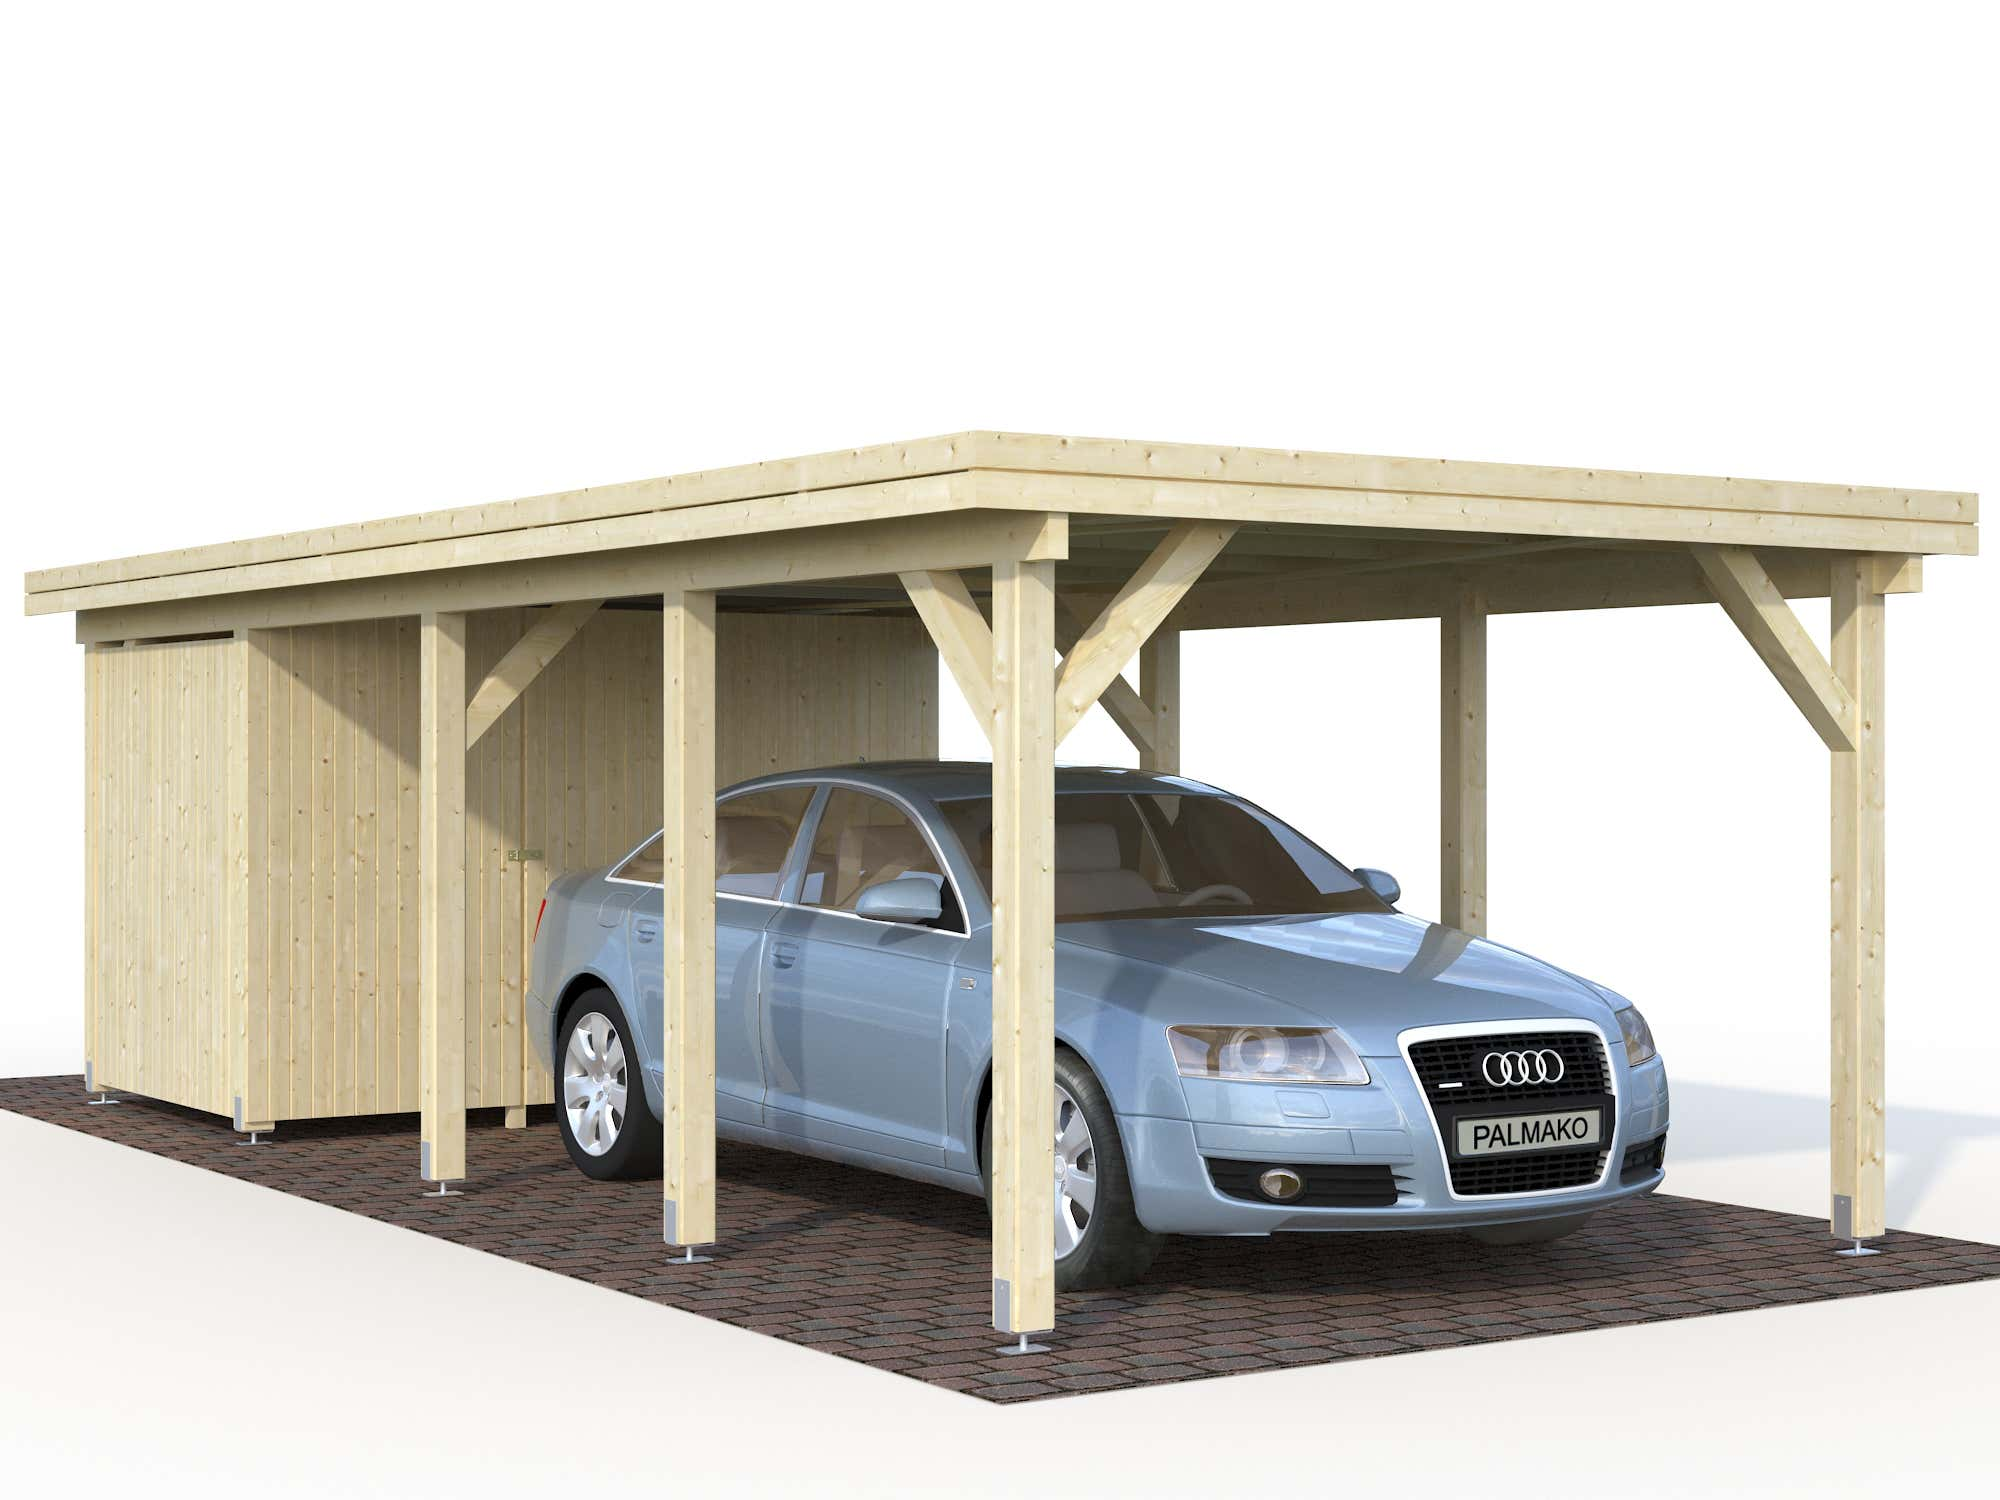 palmako carport karl 23 1 m cp3676 a z gartenhaus gmbh. Black Bedroom Furniture Sets. Home Design Ideas